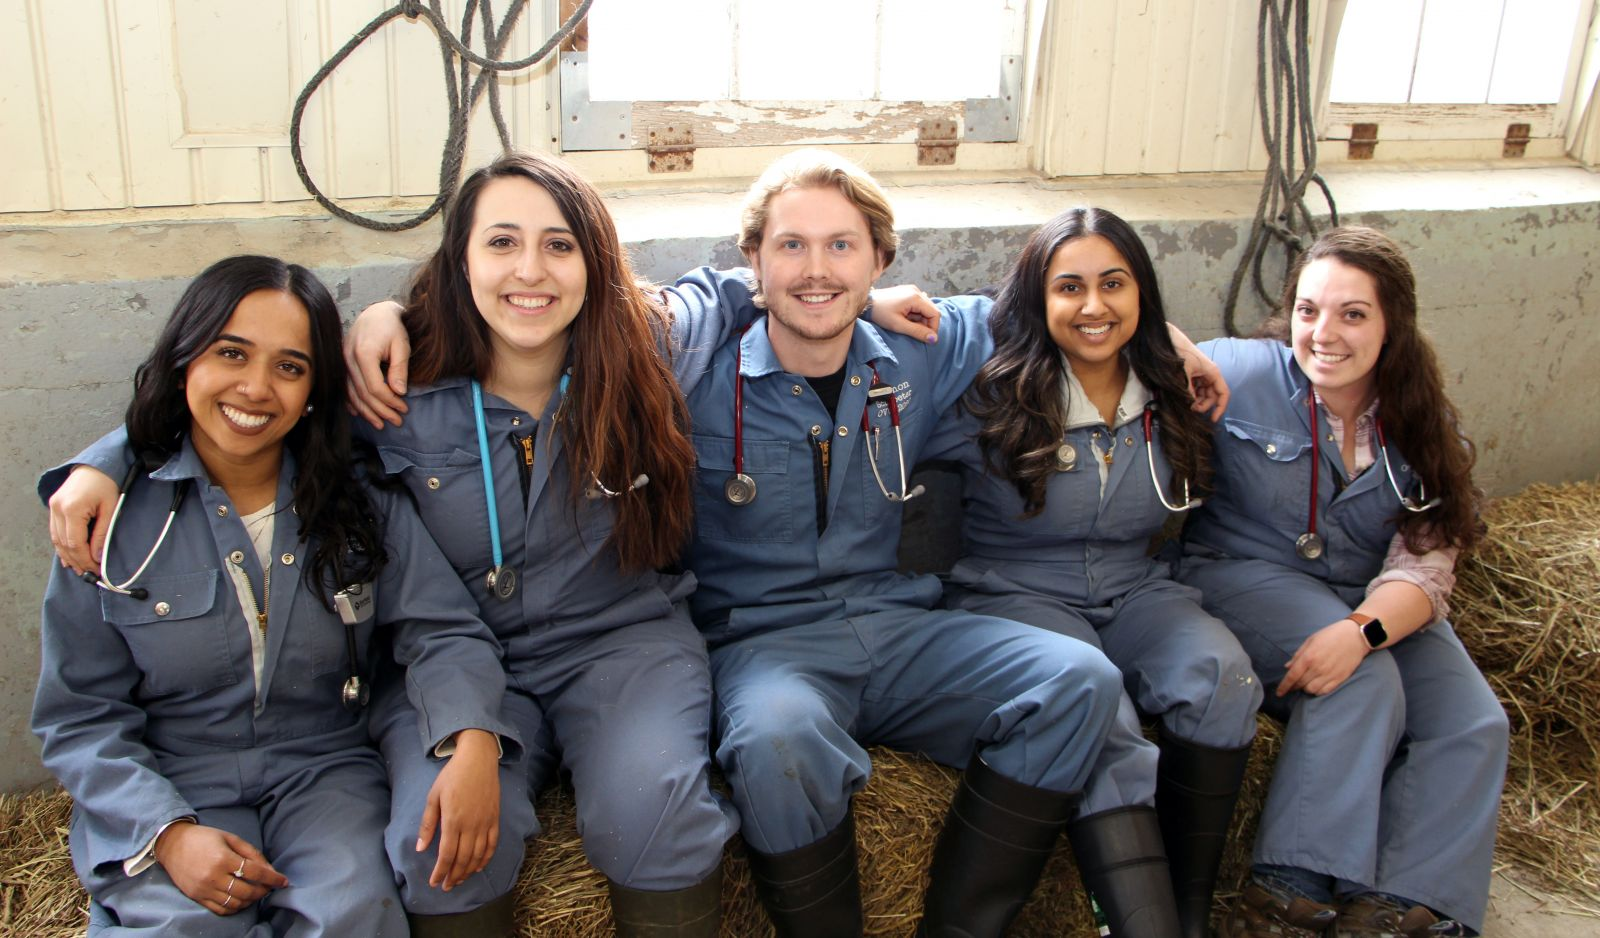 Ontario Veterinary College student veterinarians